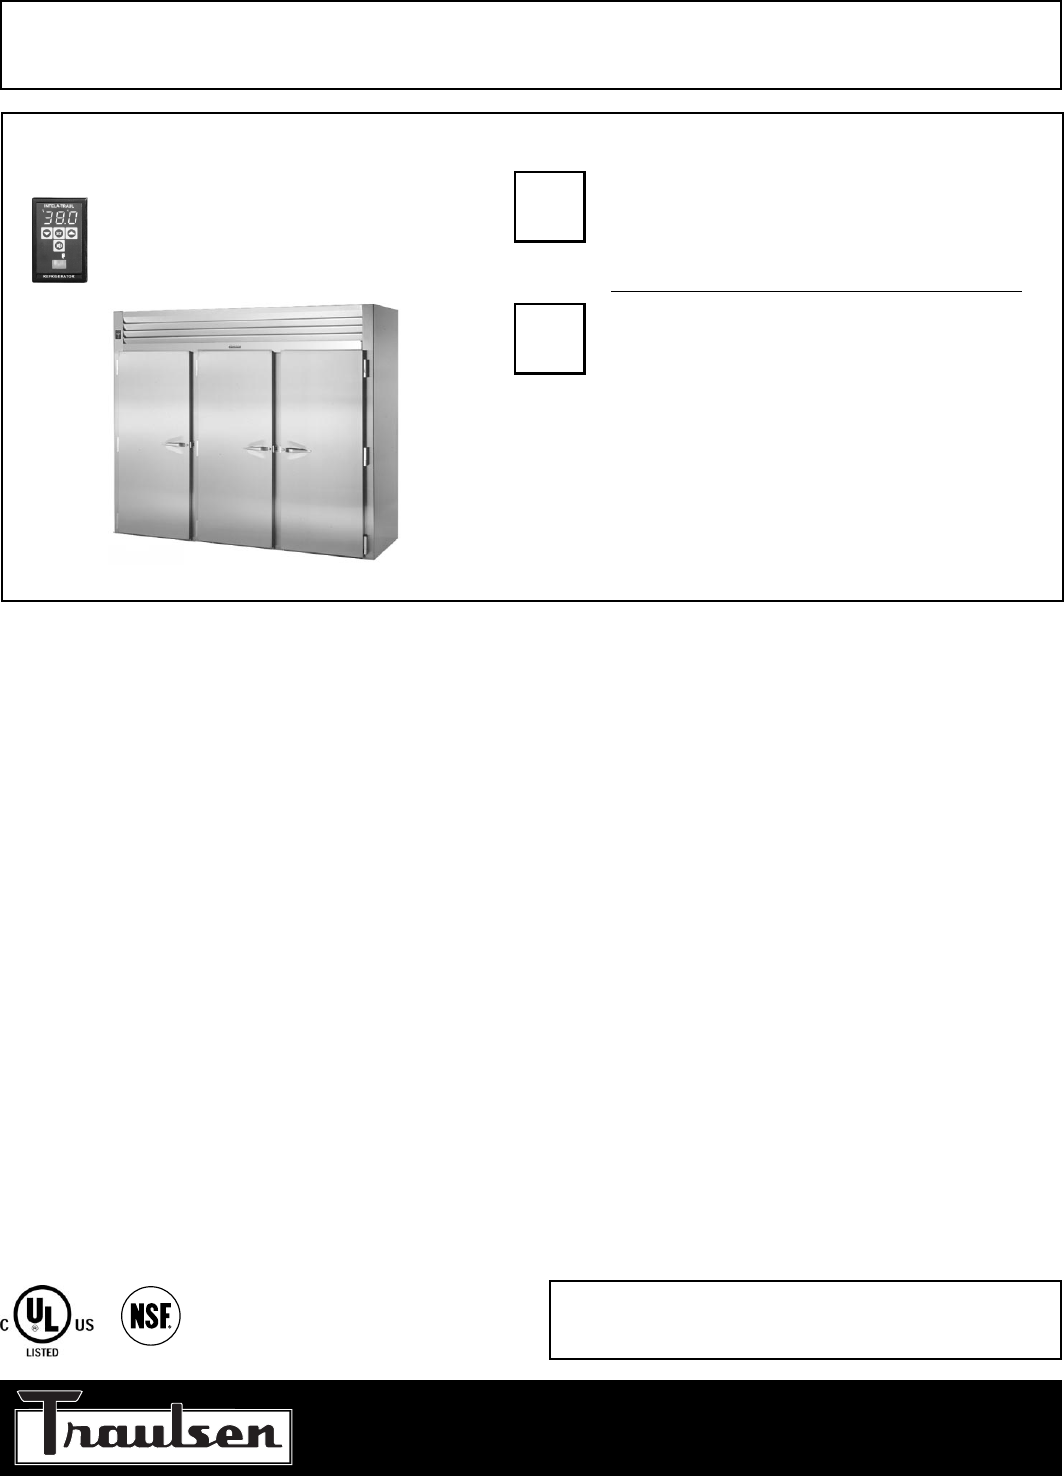 Traulsen refrigerator rri232lut fhs user guide manualsonline traulsen rri232lut fhs refrigerator user manual cheapraybanclubmaster Image collections